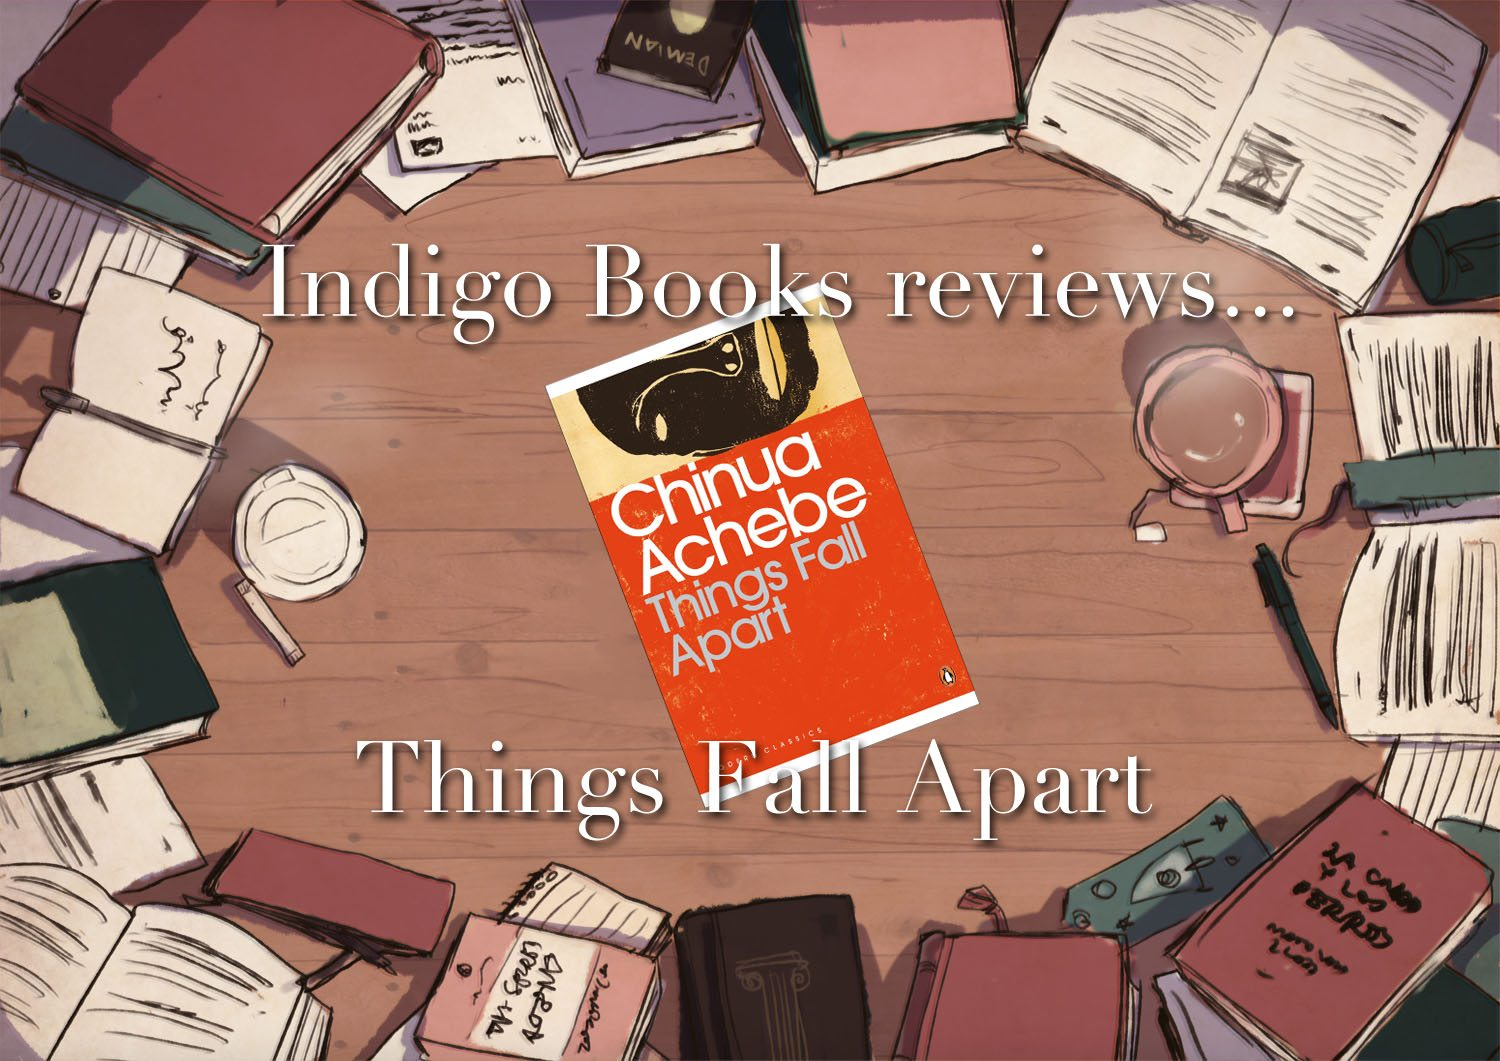 things fall apart review In which john green teaches you about chinua achebe's 1958 novel, things fall apart you'll learn about igboland, a region in modern day nigeria, prior to the arrival of the british empire.